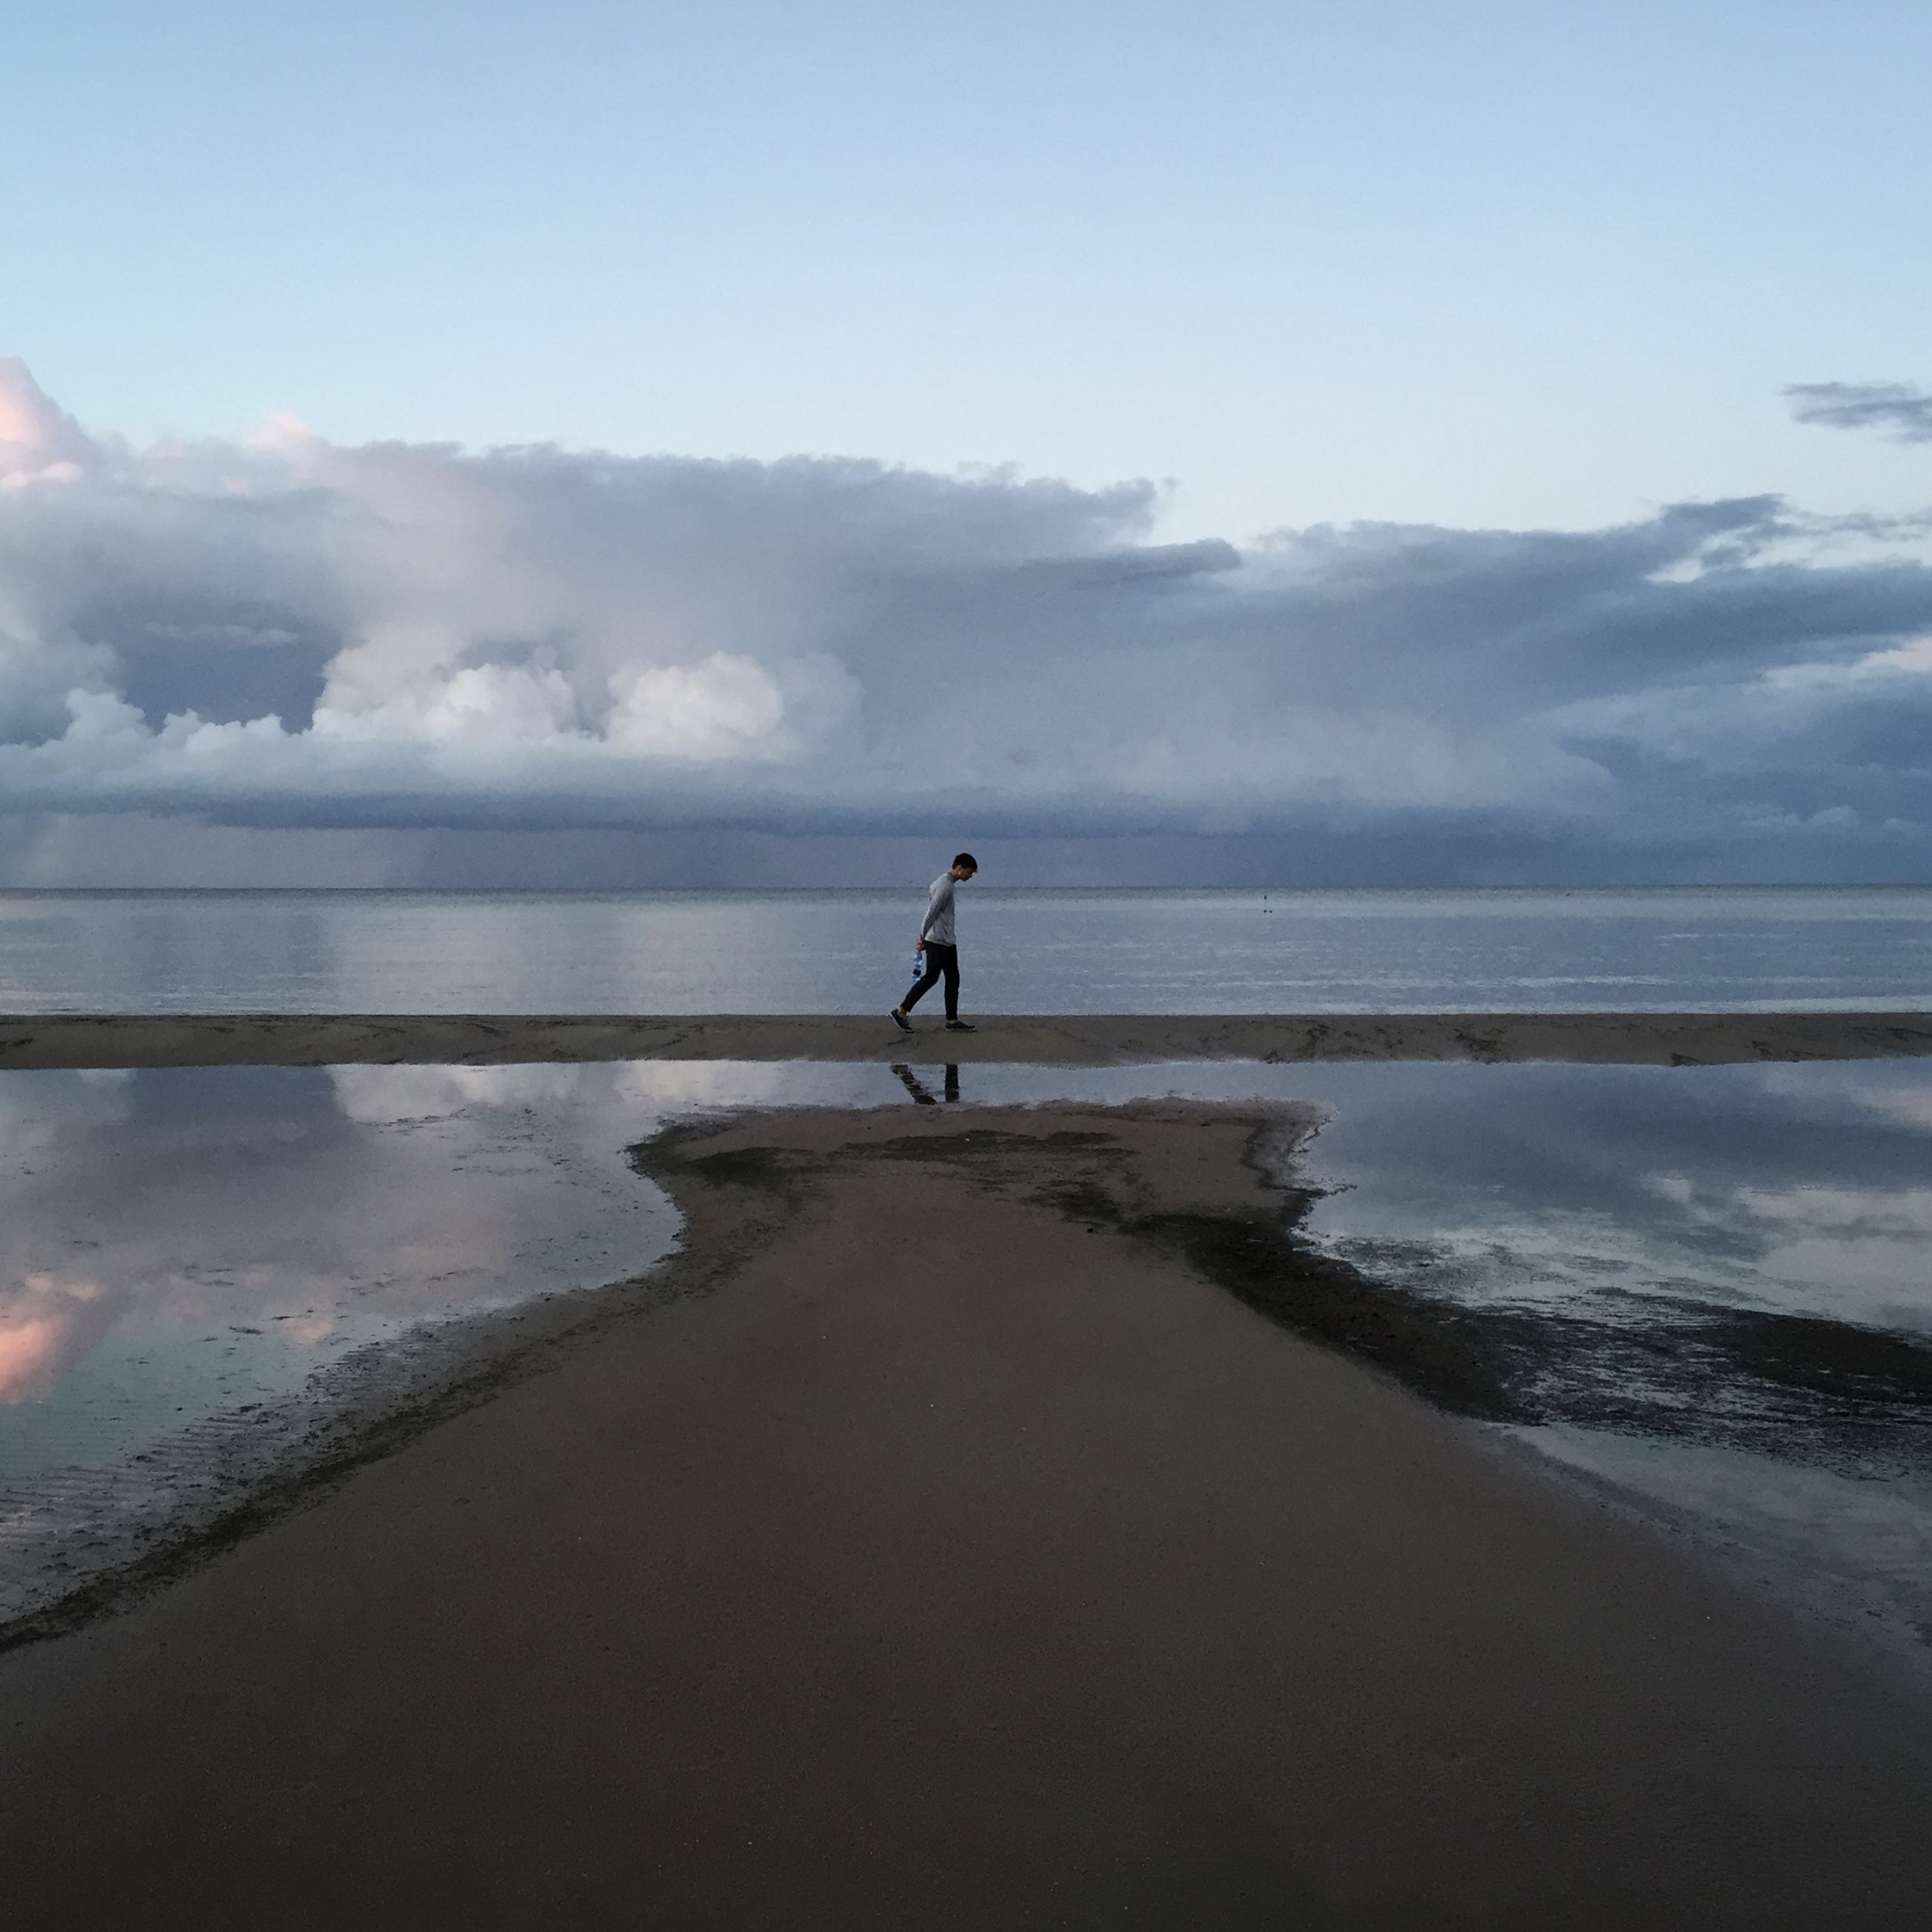 sea, water, sky, full length, tranquil scene, horizon over water, beach, tranquility, scenics, silhouette, standing, lifestyles, beauty in nature, rear view, leisure activity, shore, walking, nature